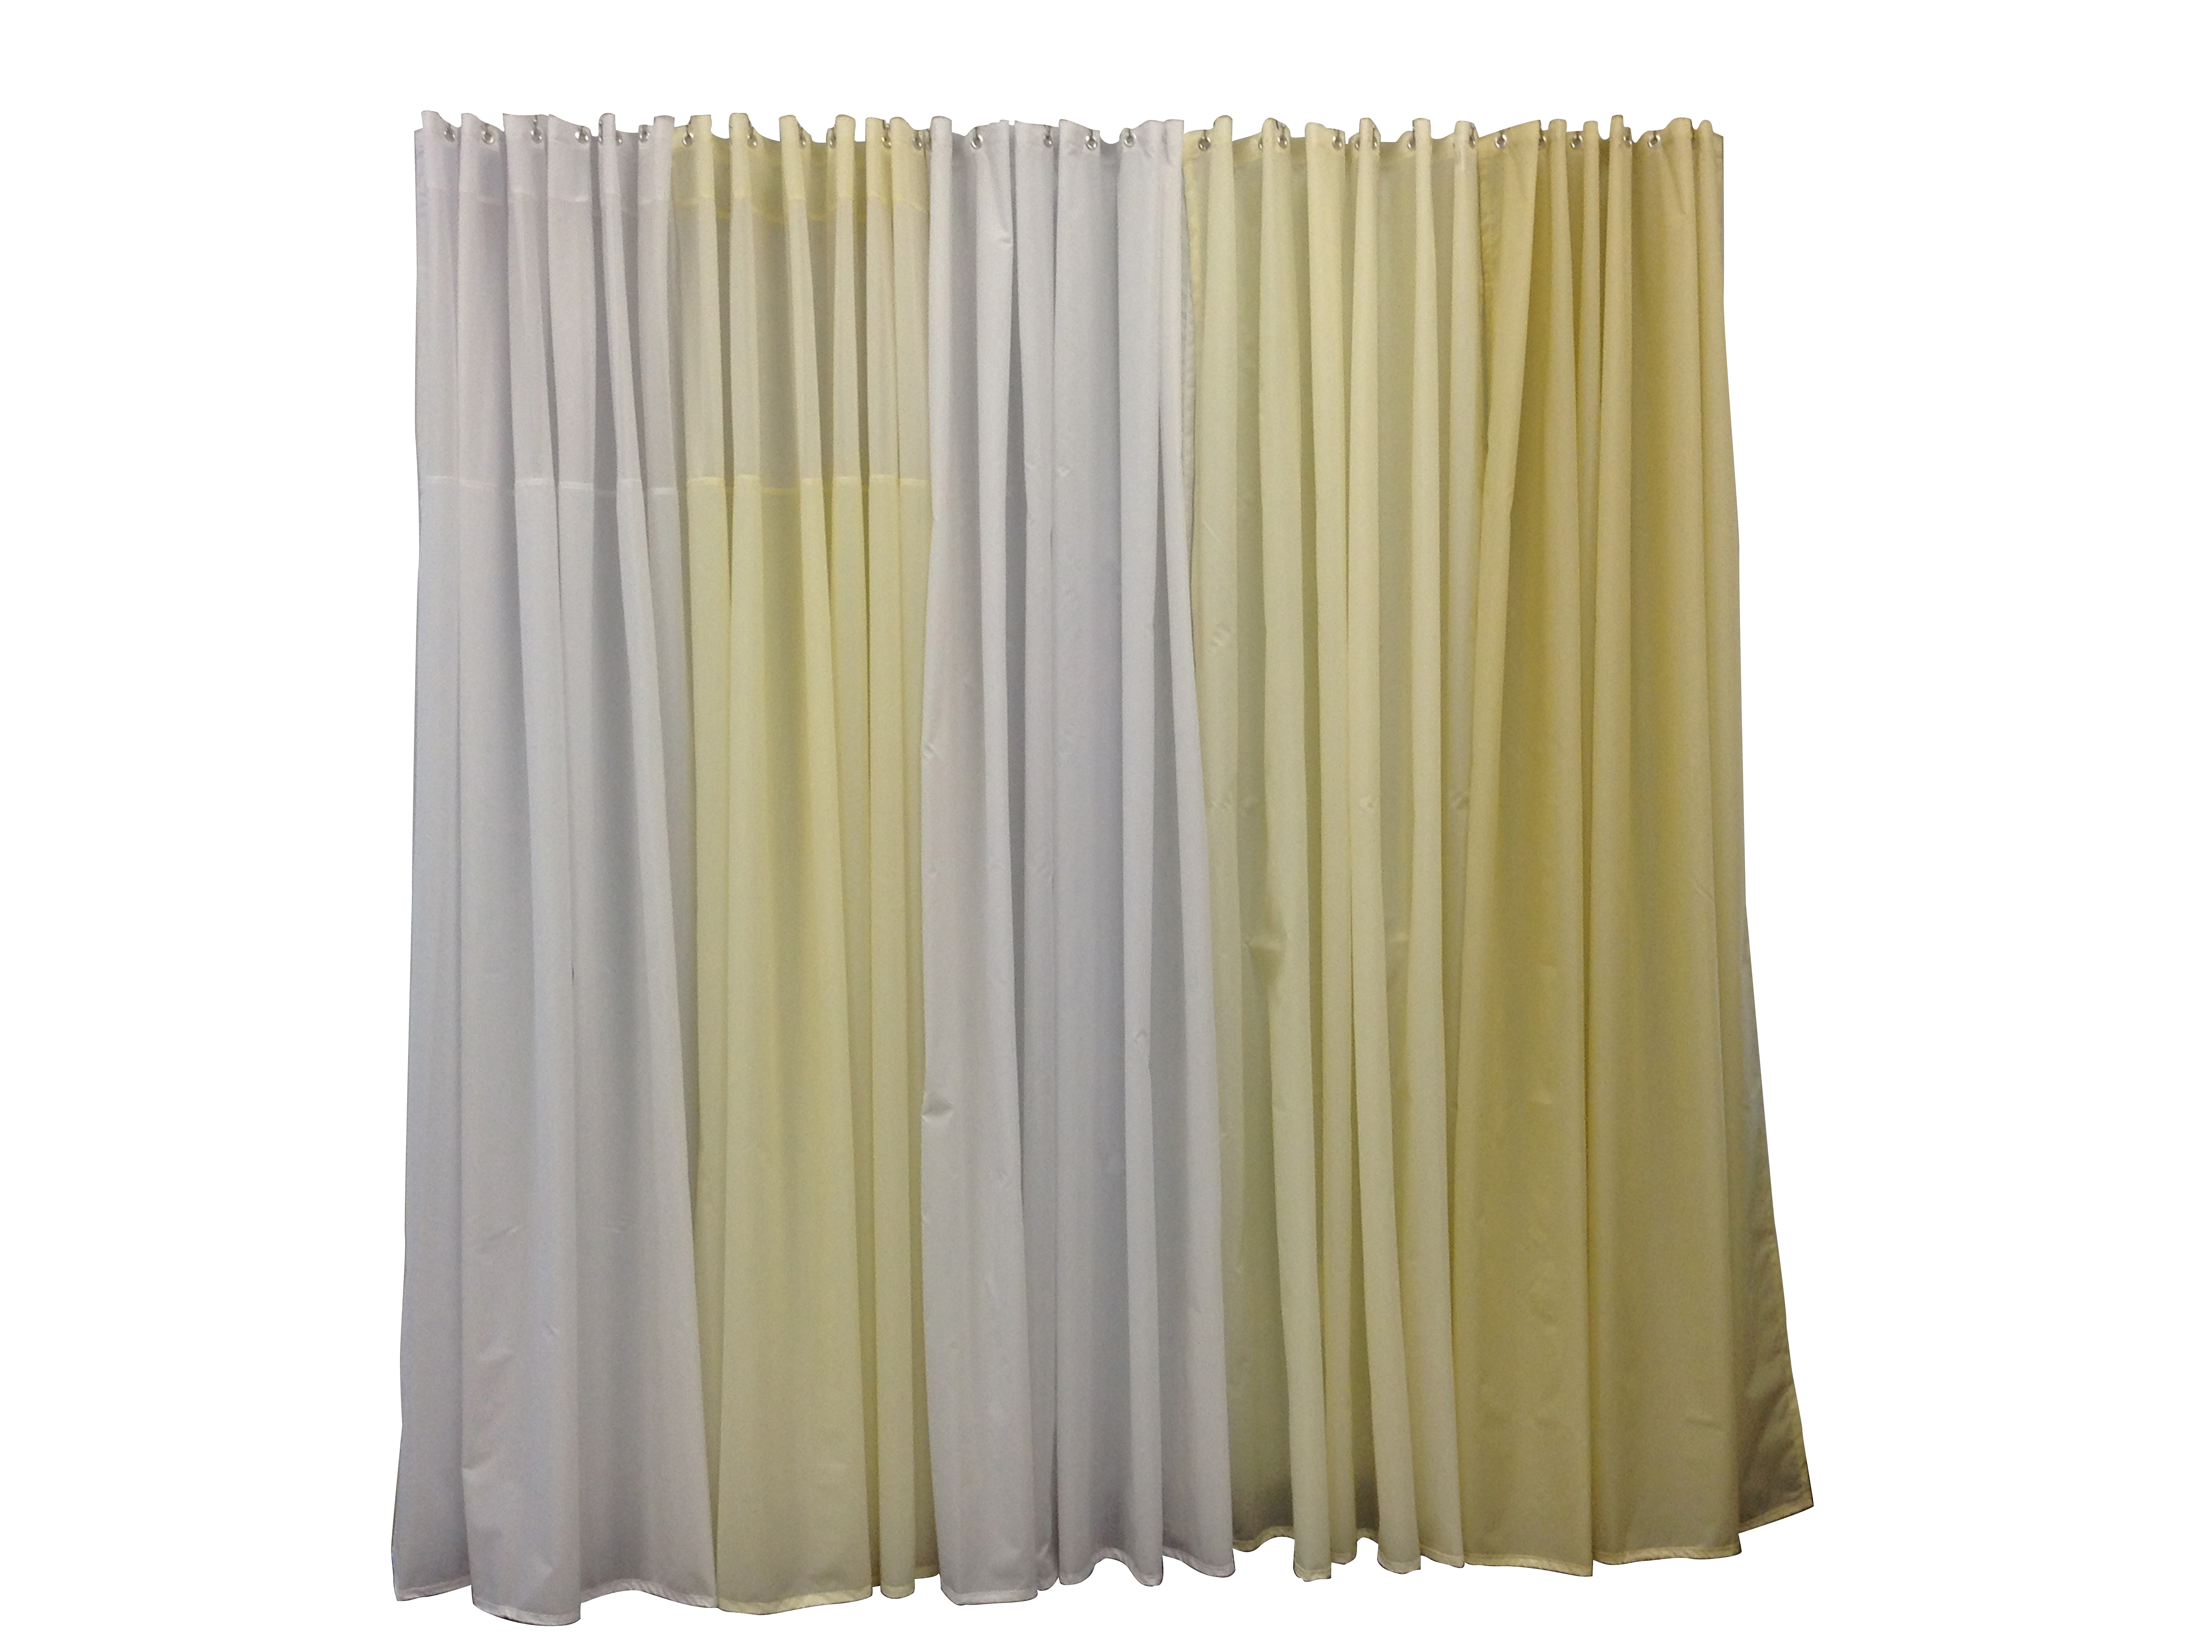 walmart your extra residence curtain decor long in liners interior liner exciting for shower dashing design